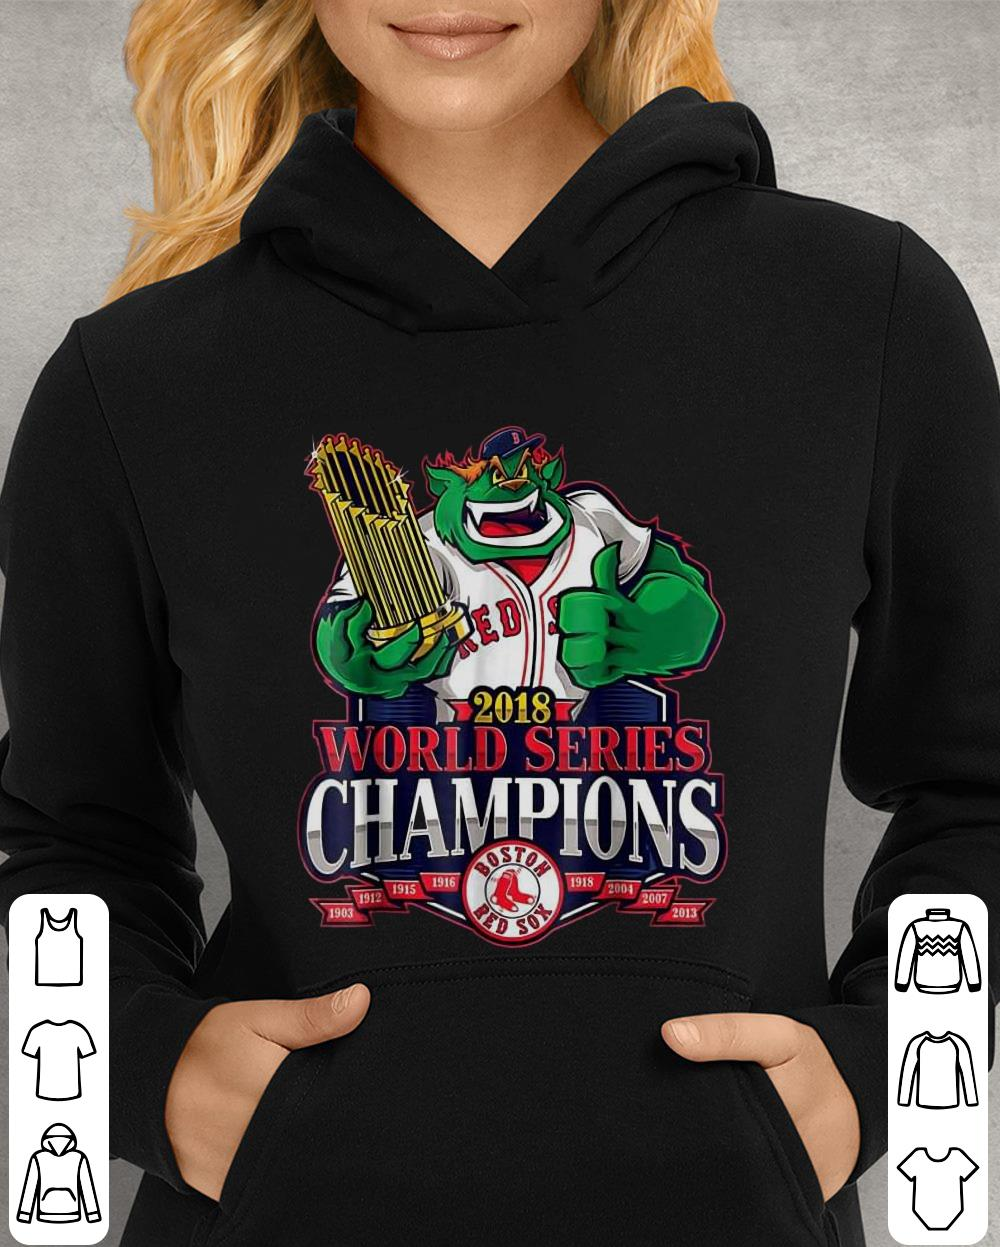 76a43a5a Boston Red Sox 2018 World Series Champions Damage Done shirt, hoodie, sweater  sweatshirt, long-sleeve For Men and Women